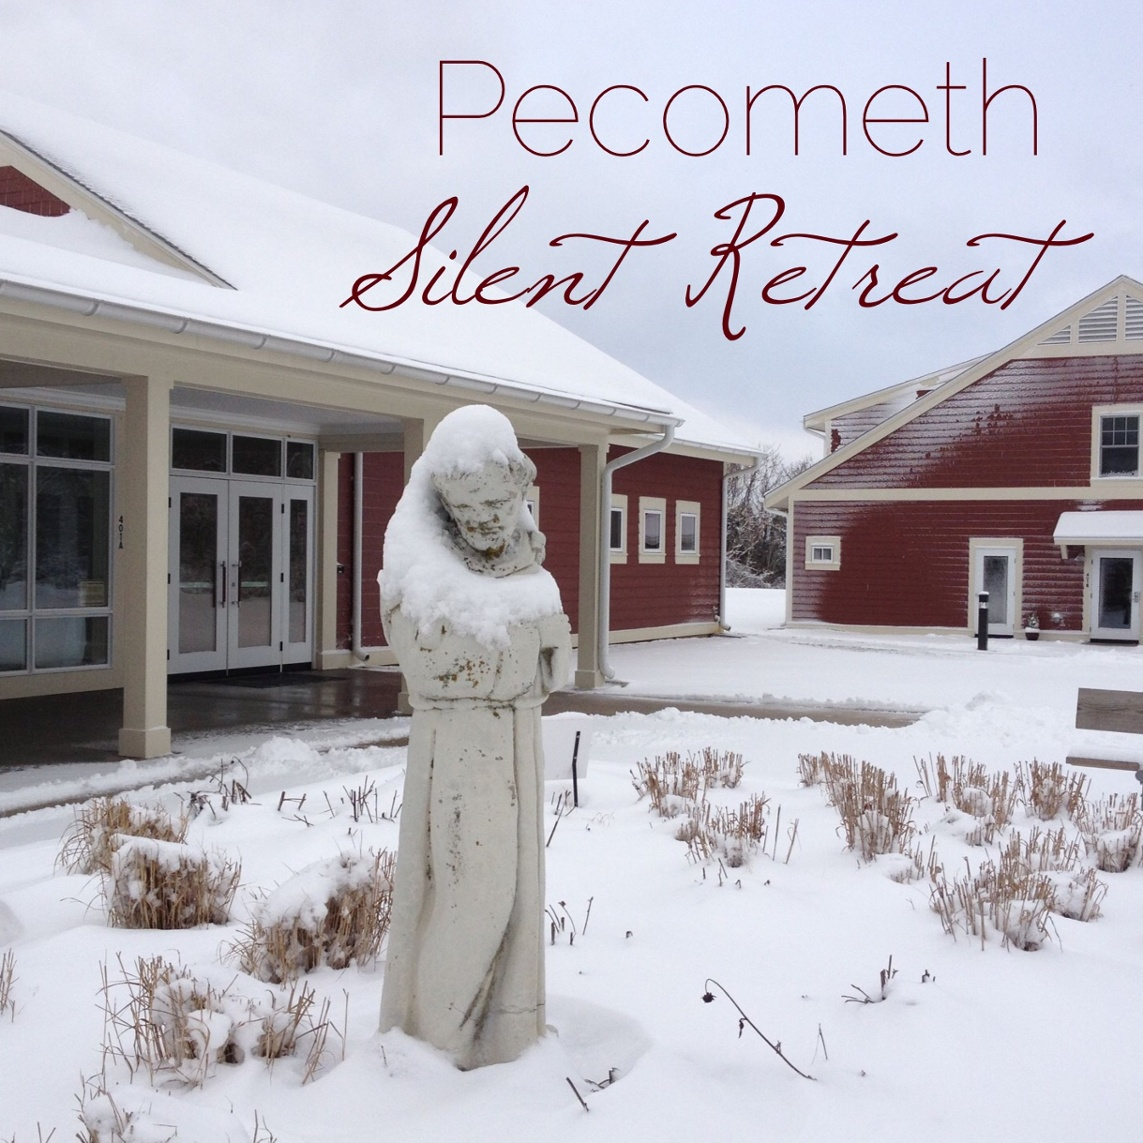 Winter silent logo